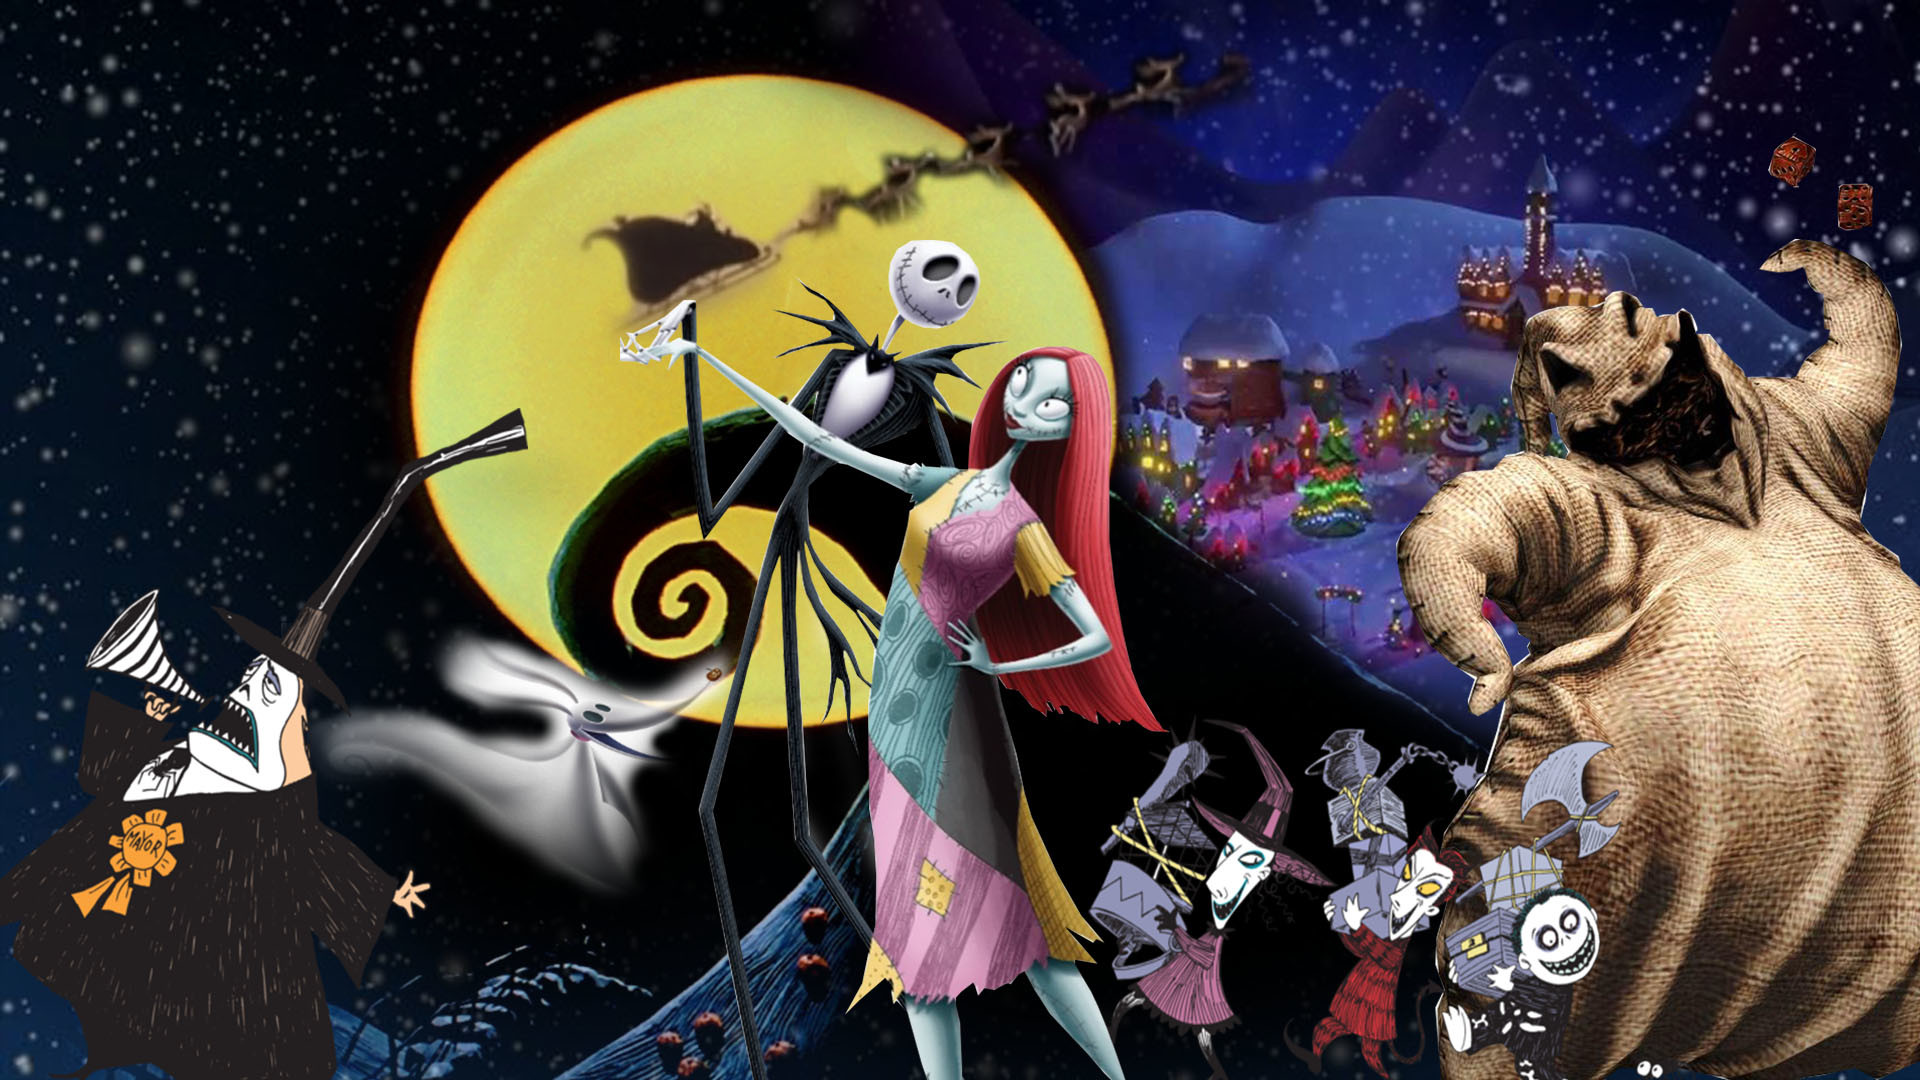 1920x1080 ... The Nightmare Before Christmas Wallpaper by The-Dark-Mamba-995